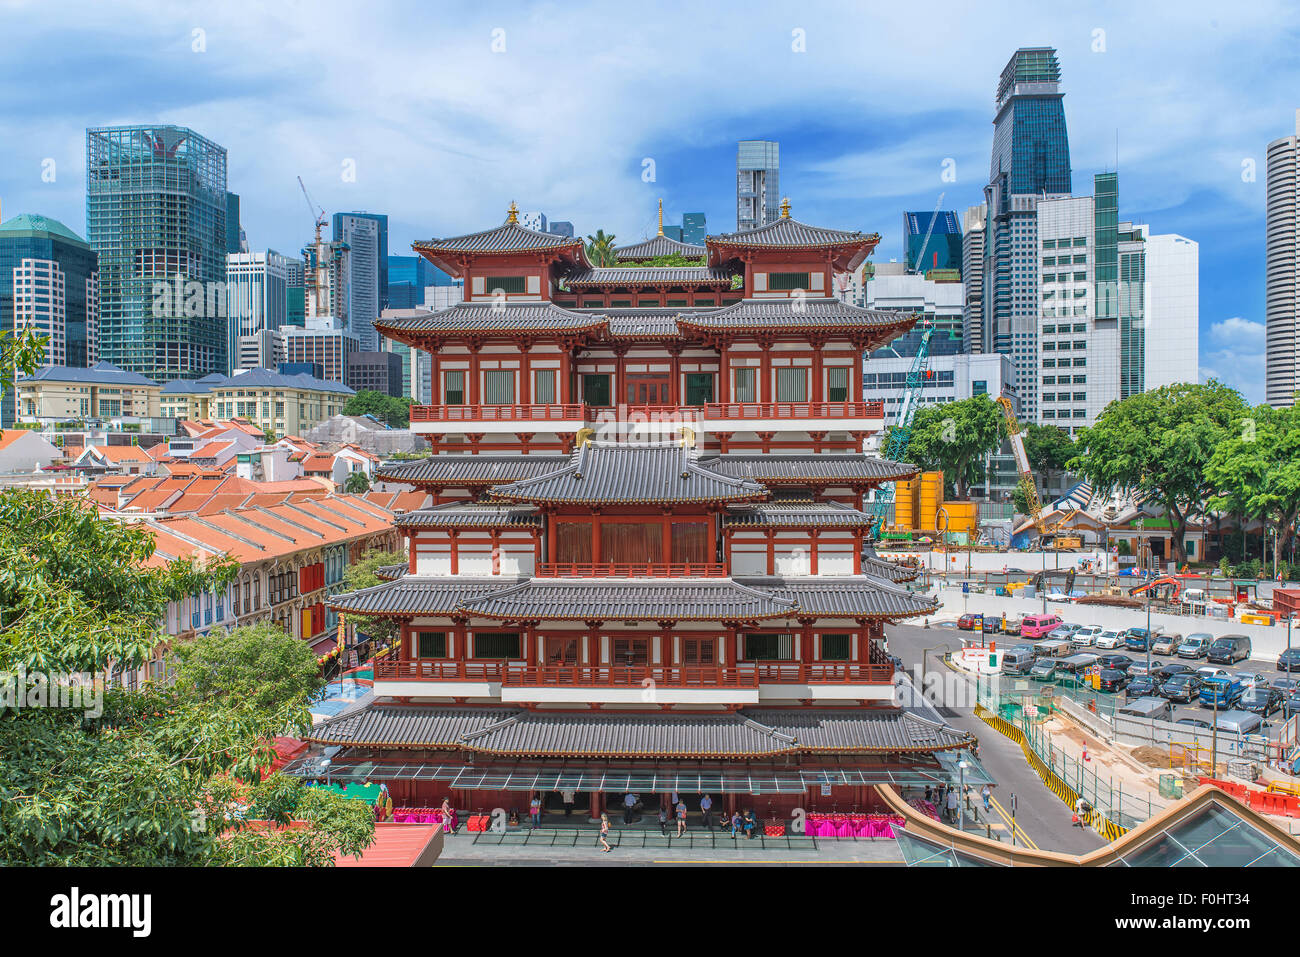 Le Buddha Tooth Relic Temple dans le quartier chinois de Singapour Photo Stock